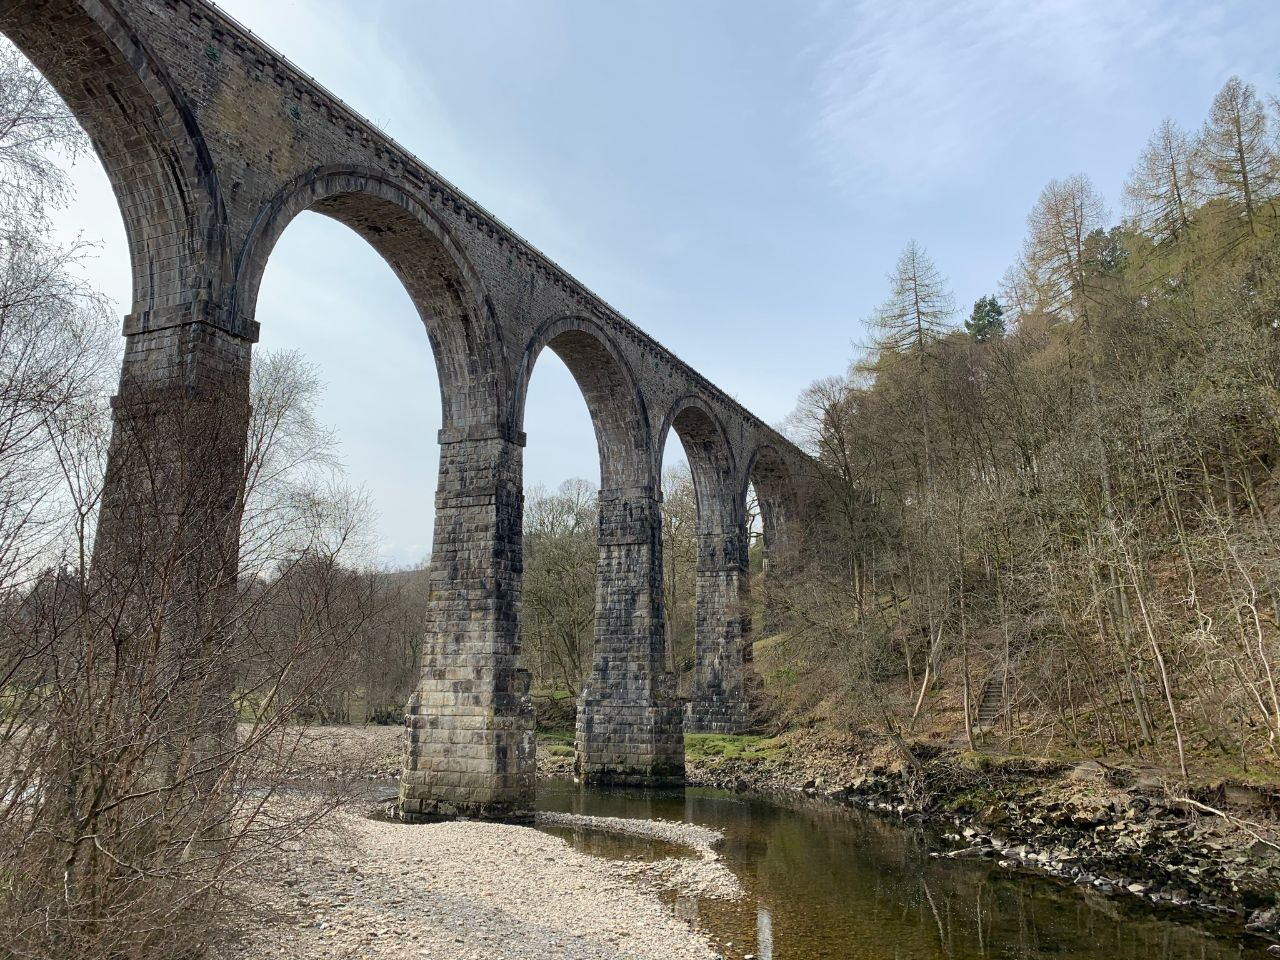 Lambley Viaduct from below